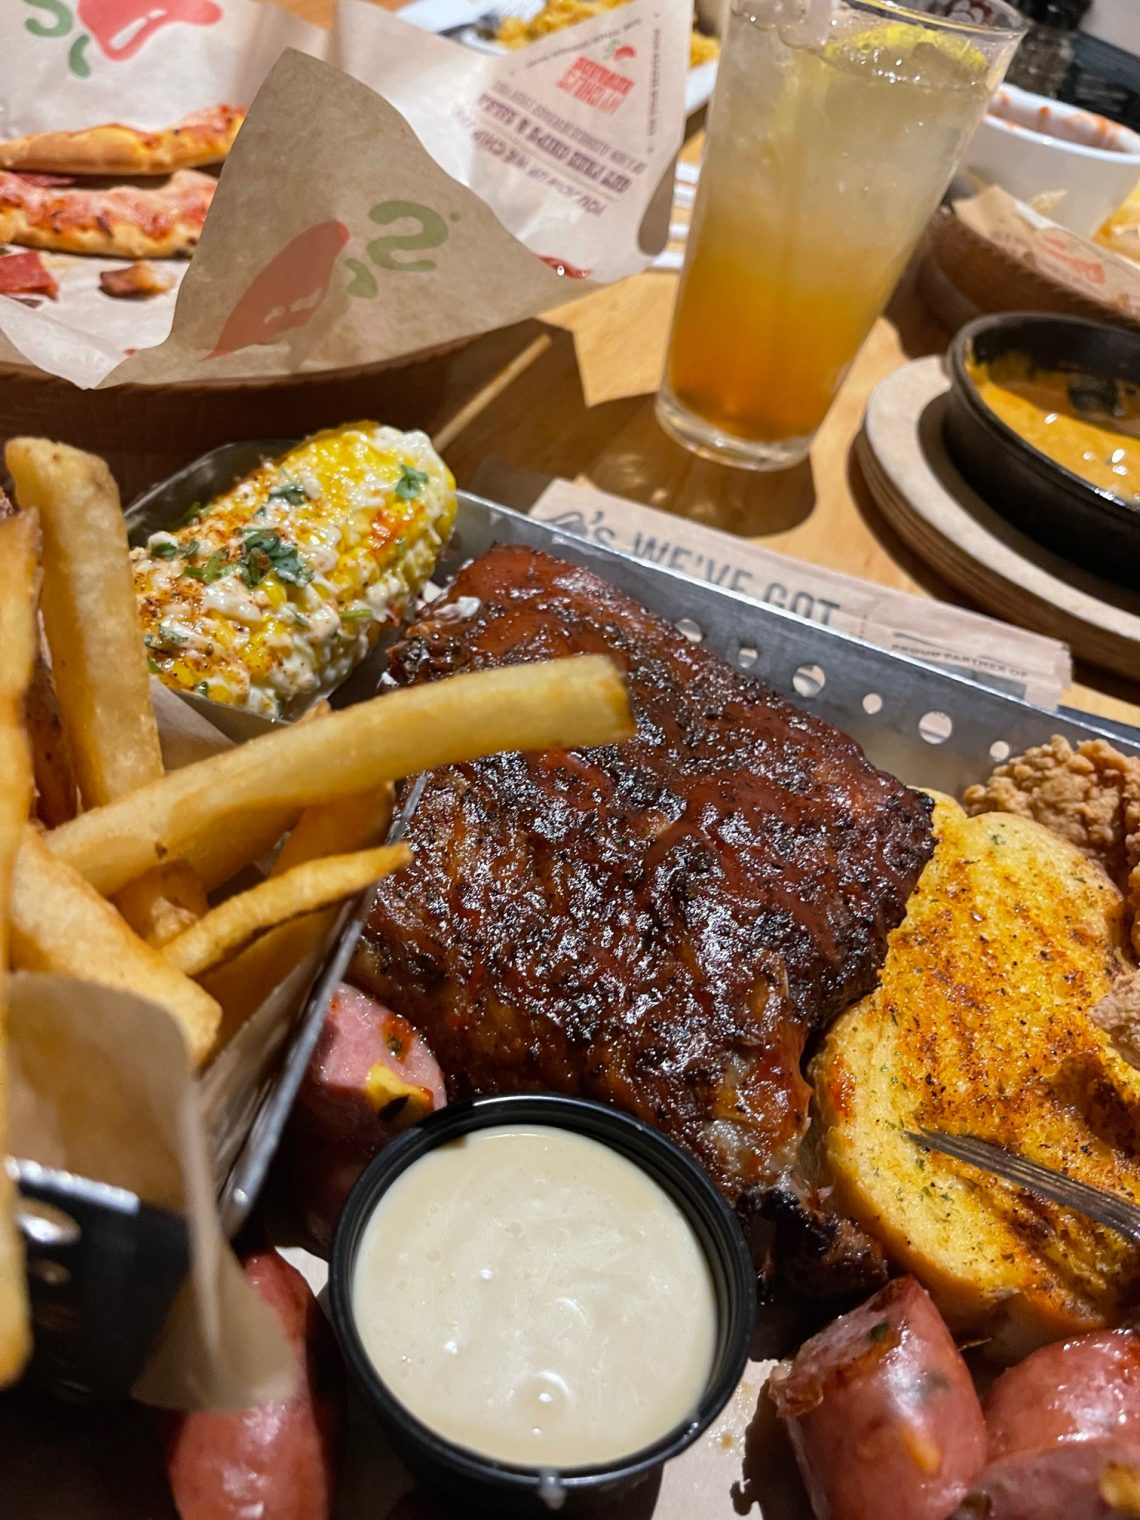 Chili's Is Becoming One of Our Go-to Spots to Eat